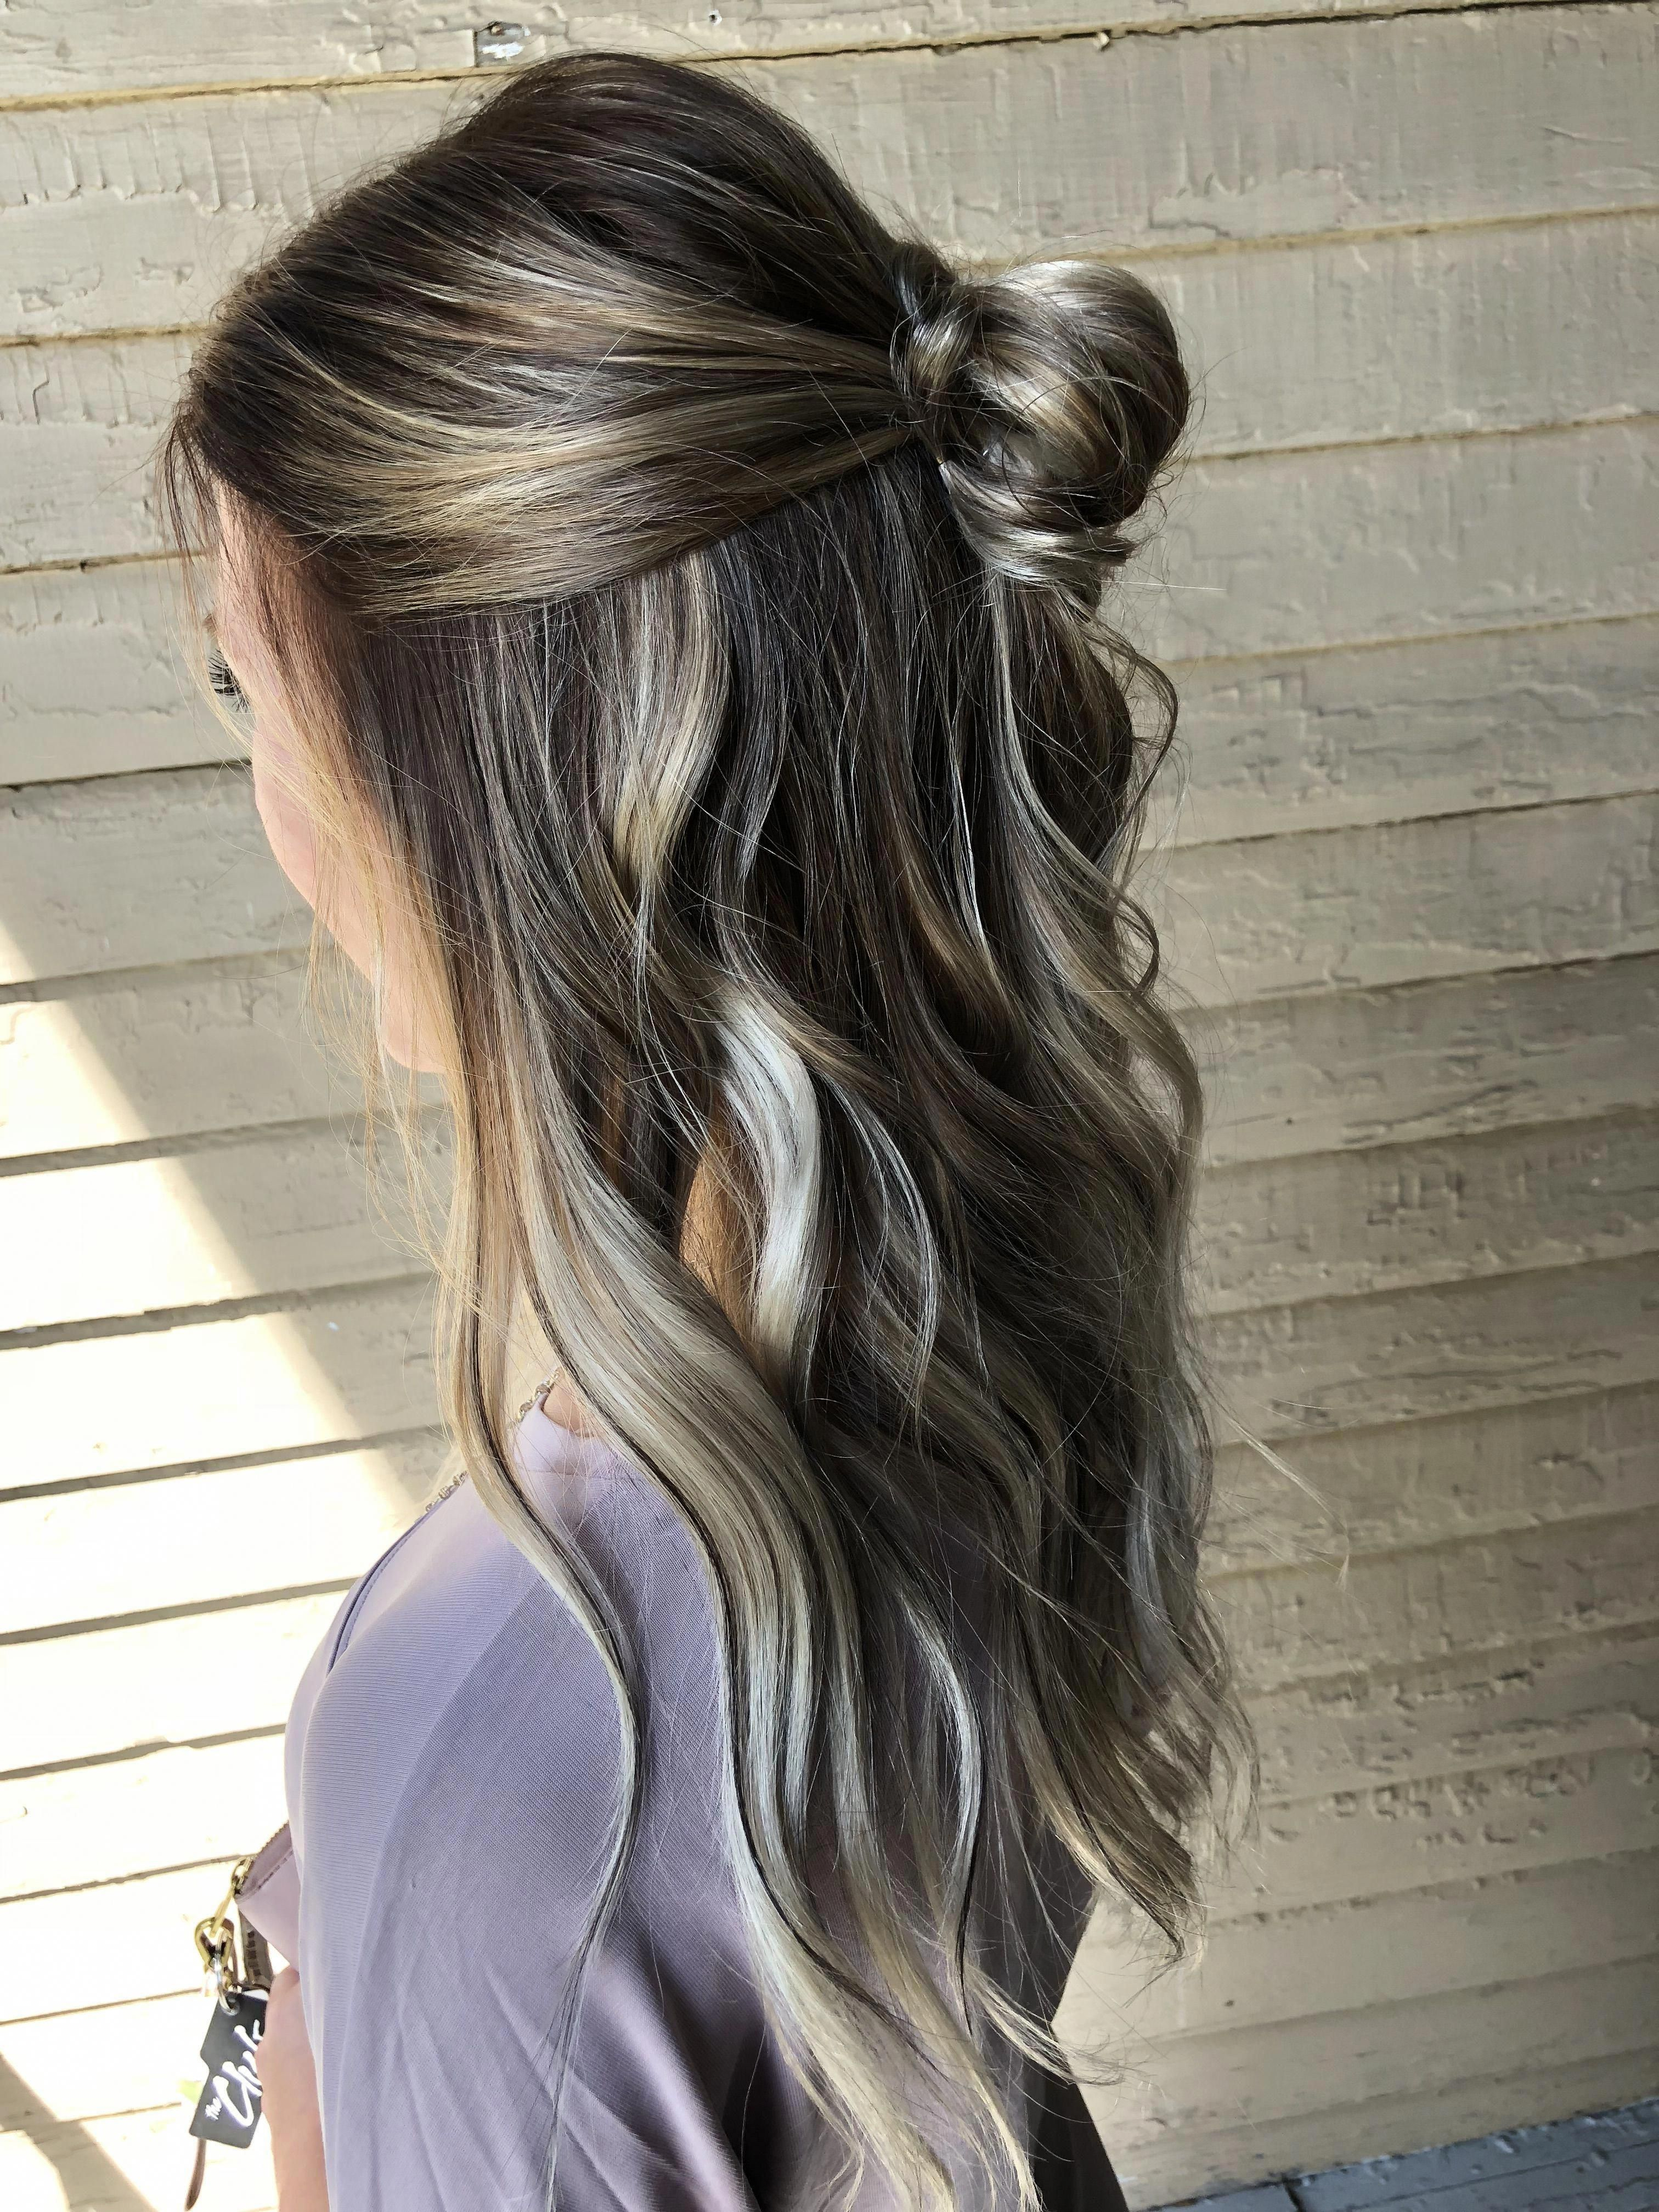 Extended Root Fall Balayage Brownombrehair Haircolorbalayage Hair Styles Dark Hair Whoville Hair